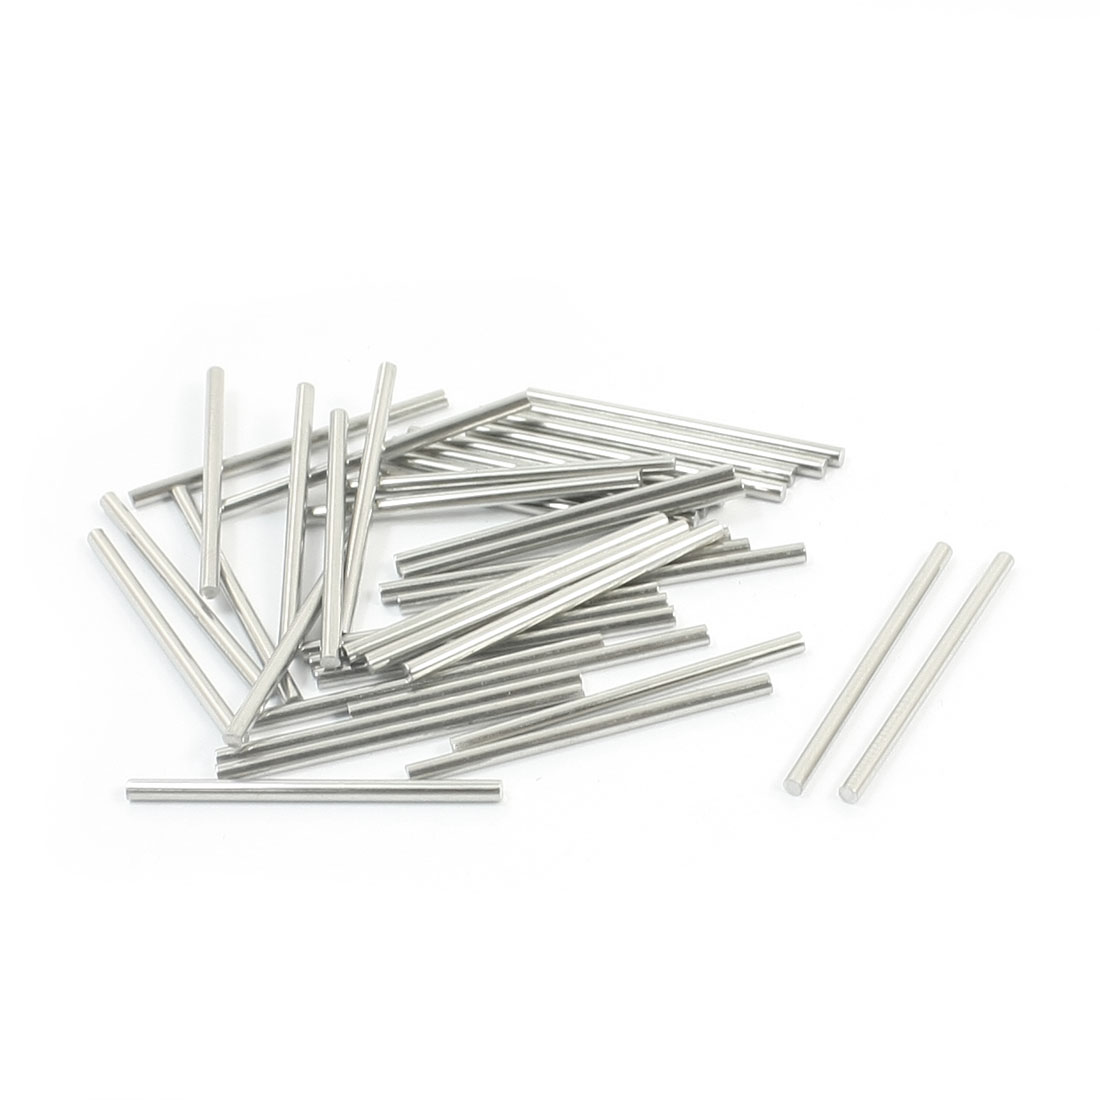 40pcs RC Model Airplane Replacement Stainless Steel Round Bars 35x2mm